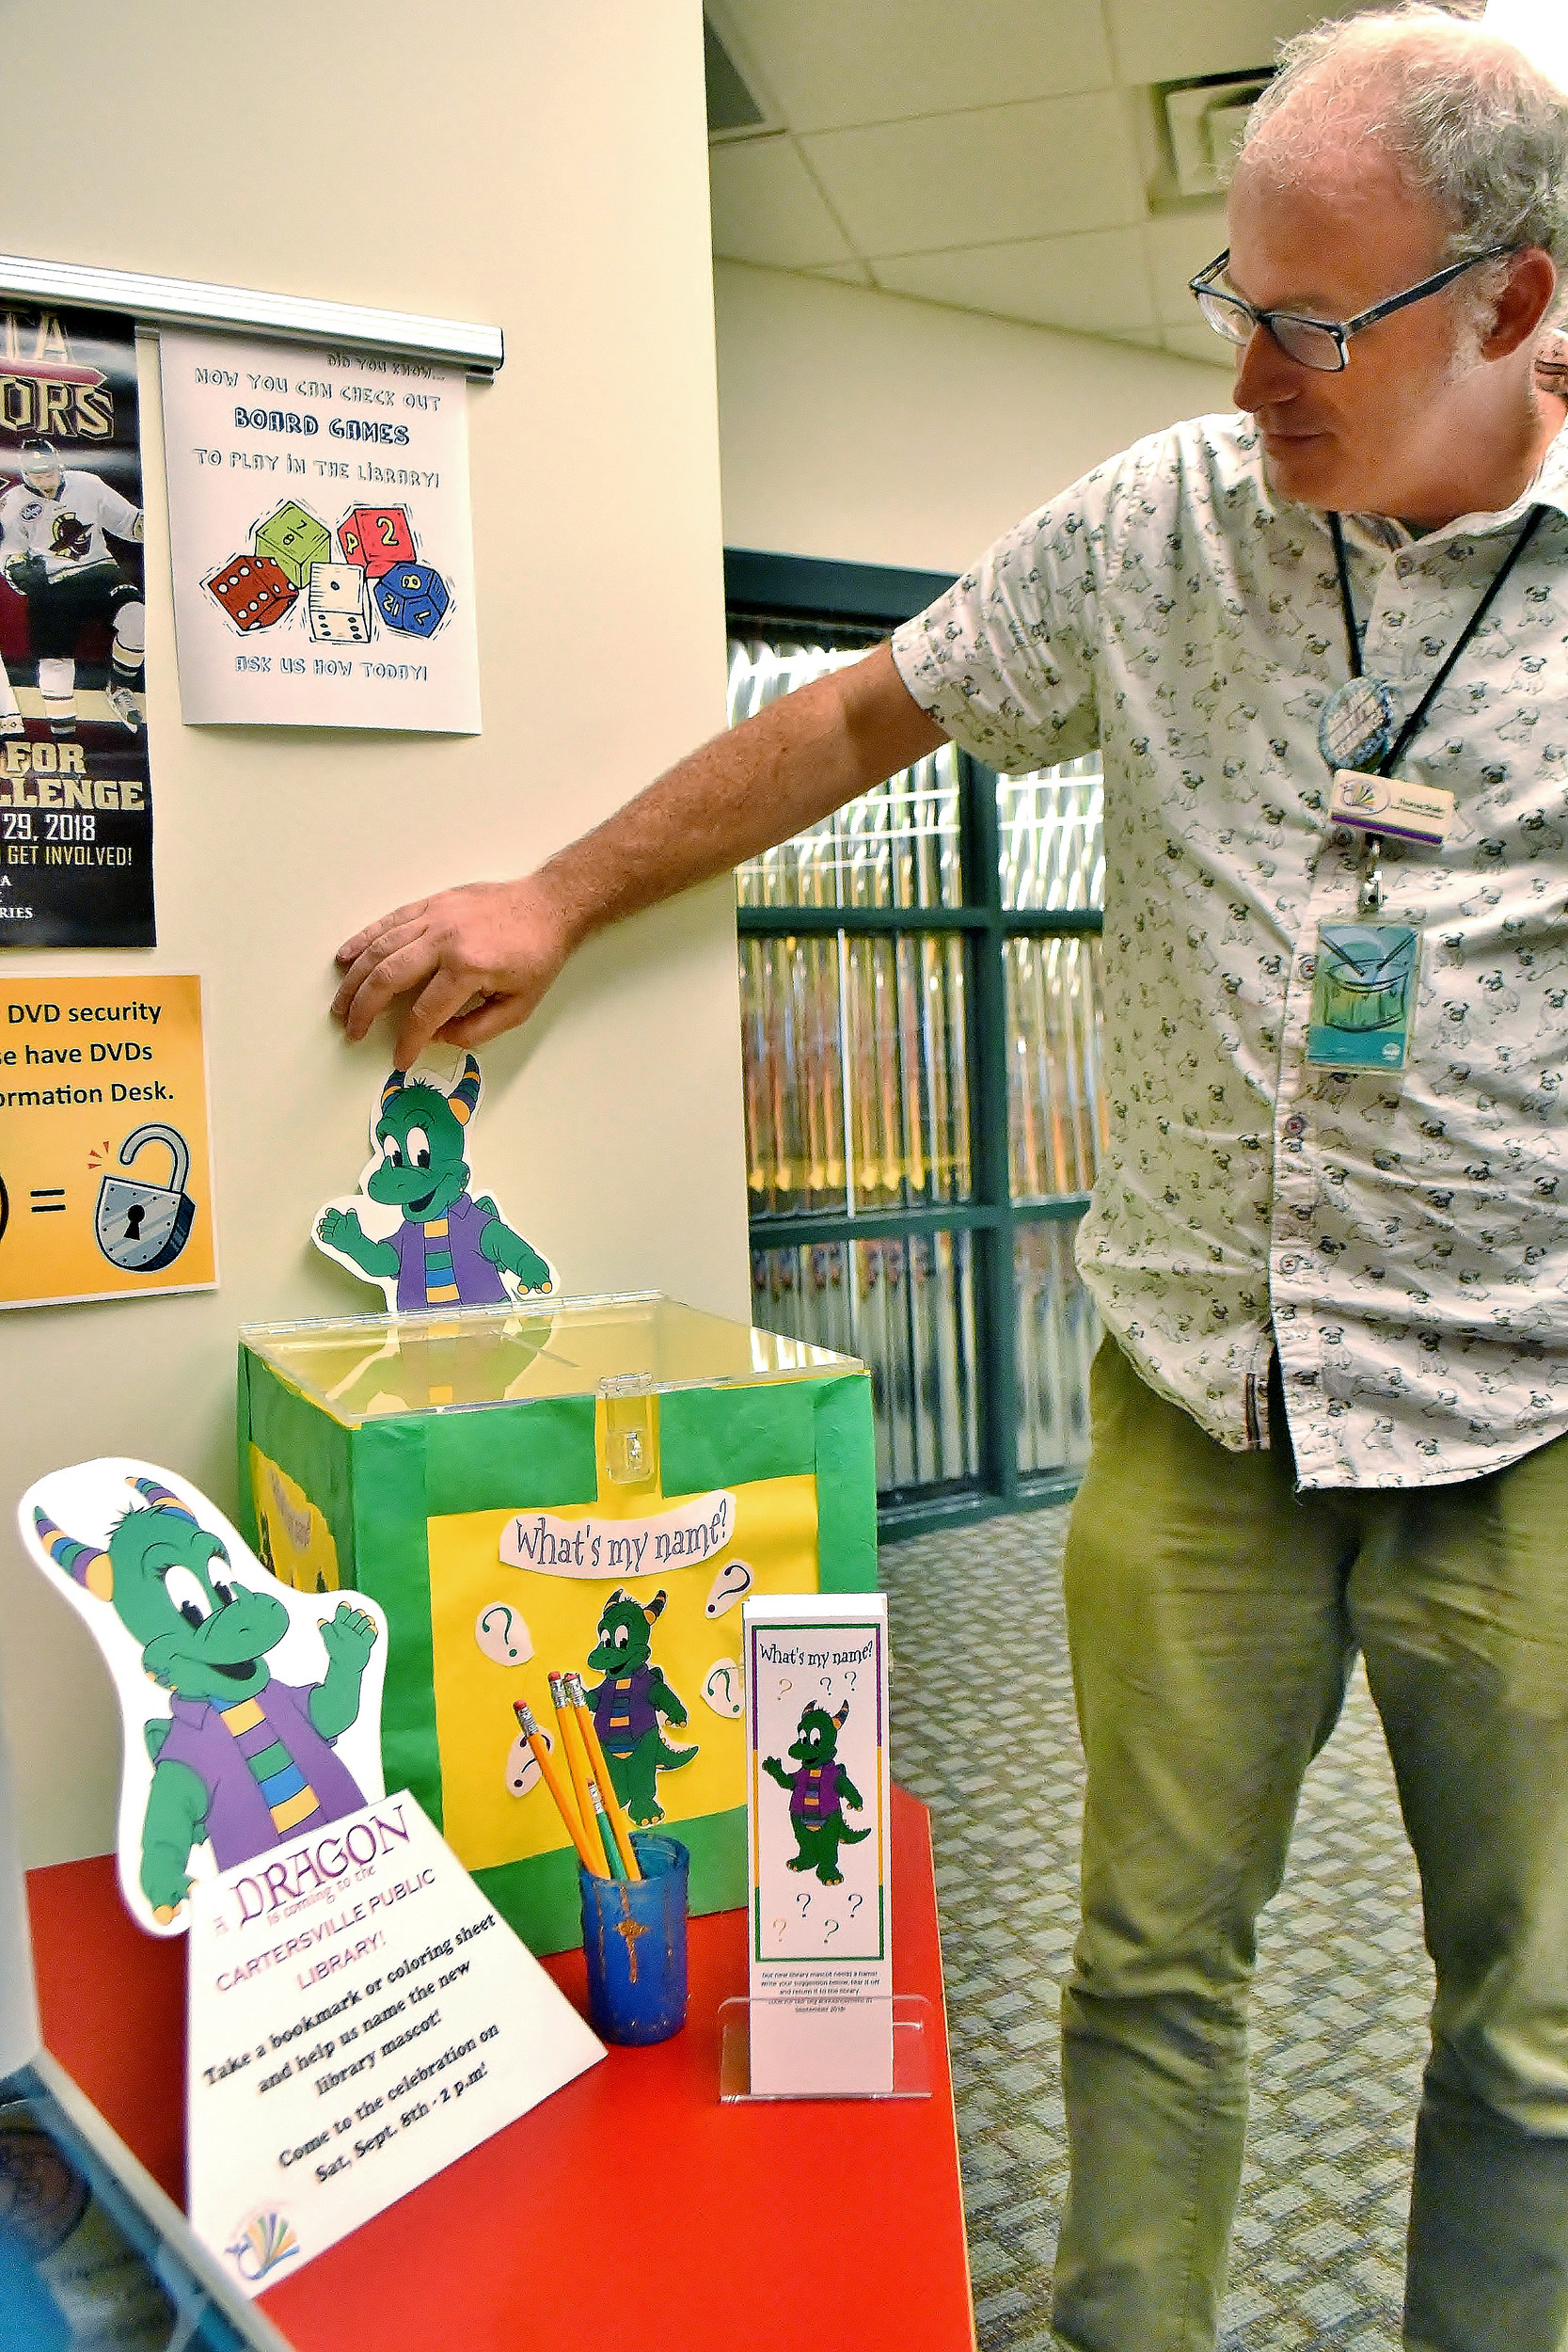 Thomas Shalin, of the Cartersville branch of the Bartow County Library System, sets up materials, including a suggestion box, in the children's section of the library for a contest to help name the dragon that has become the library's new mascot.